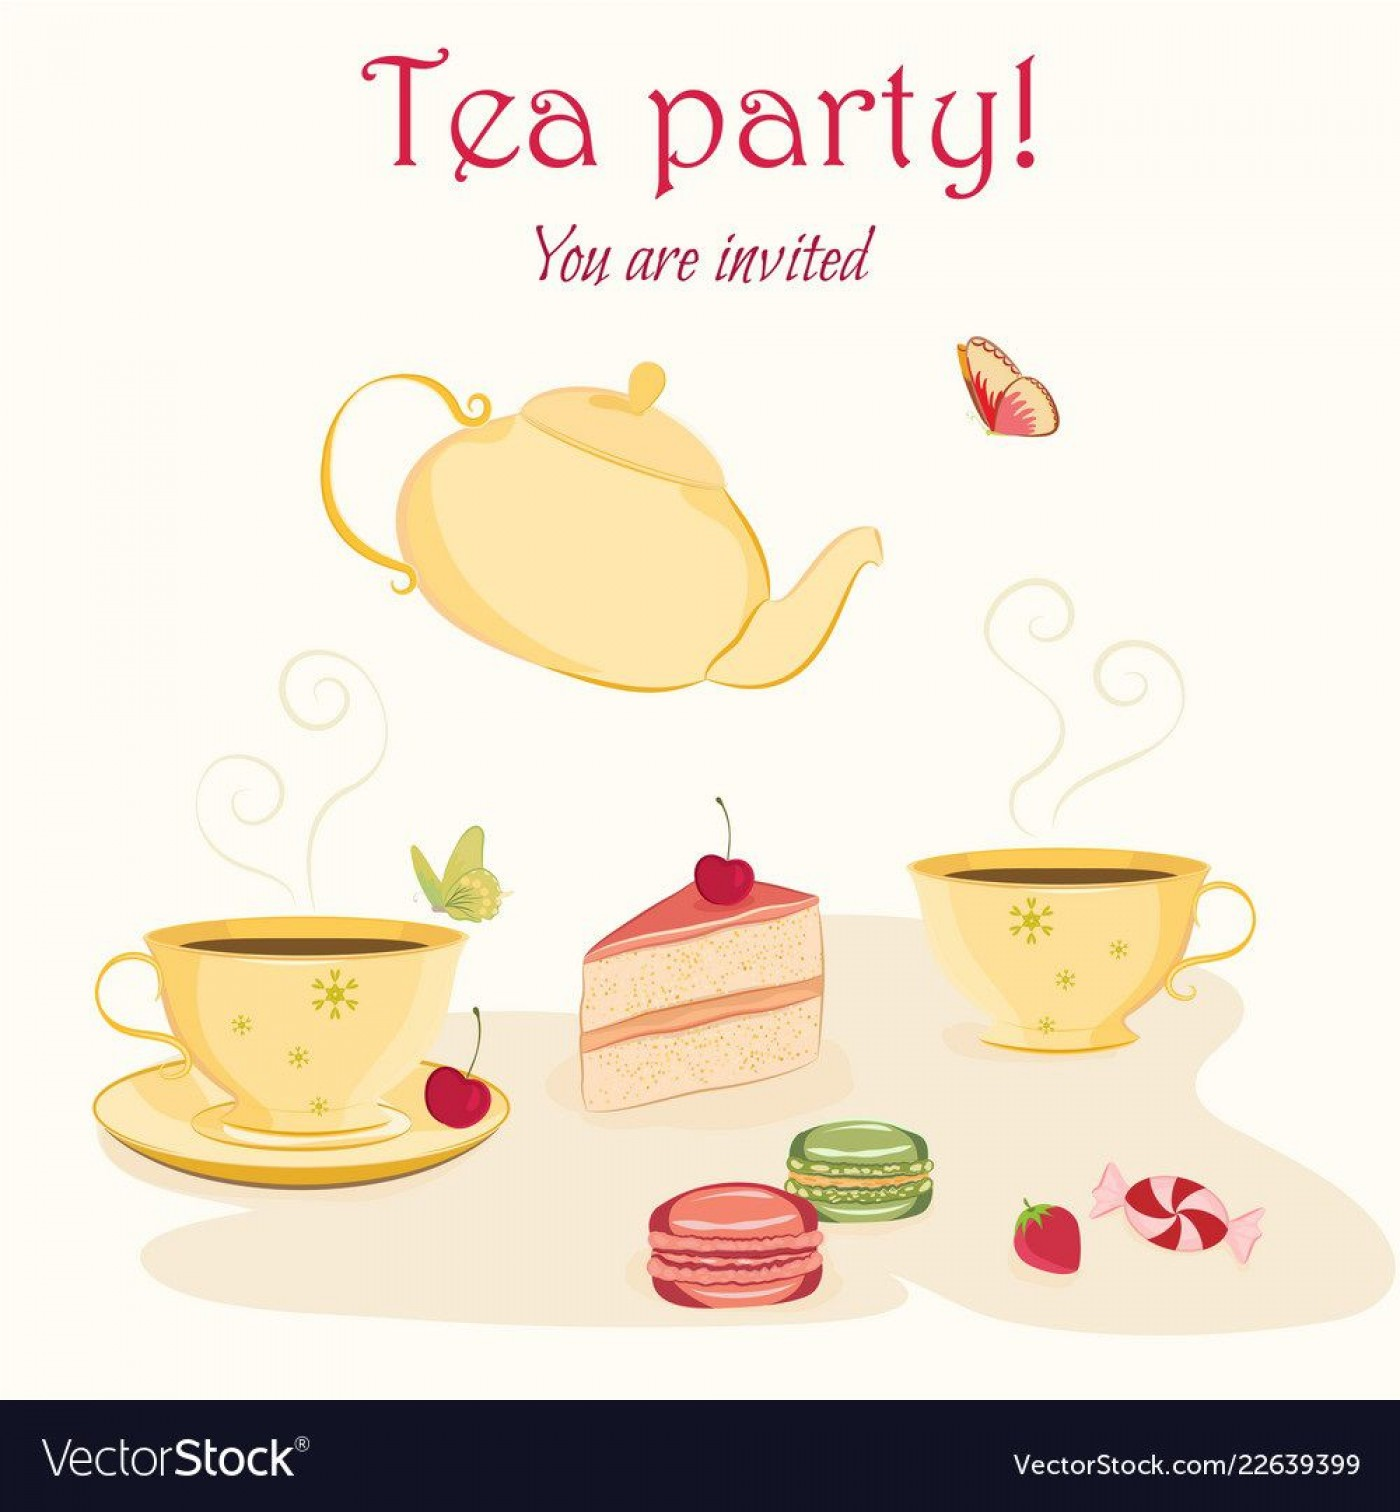 007 Exceptional Tea Party Invitation Template Photo  Vintage Free Editable Card Pdf1400